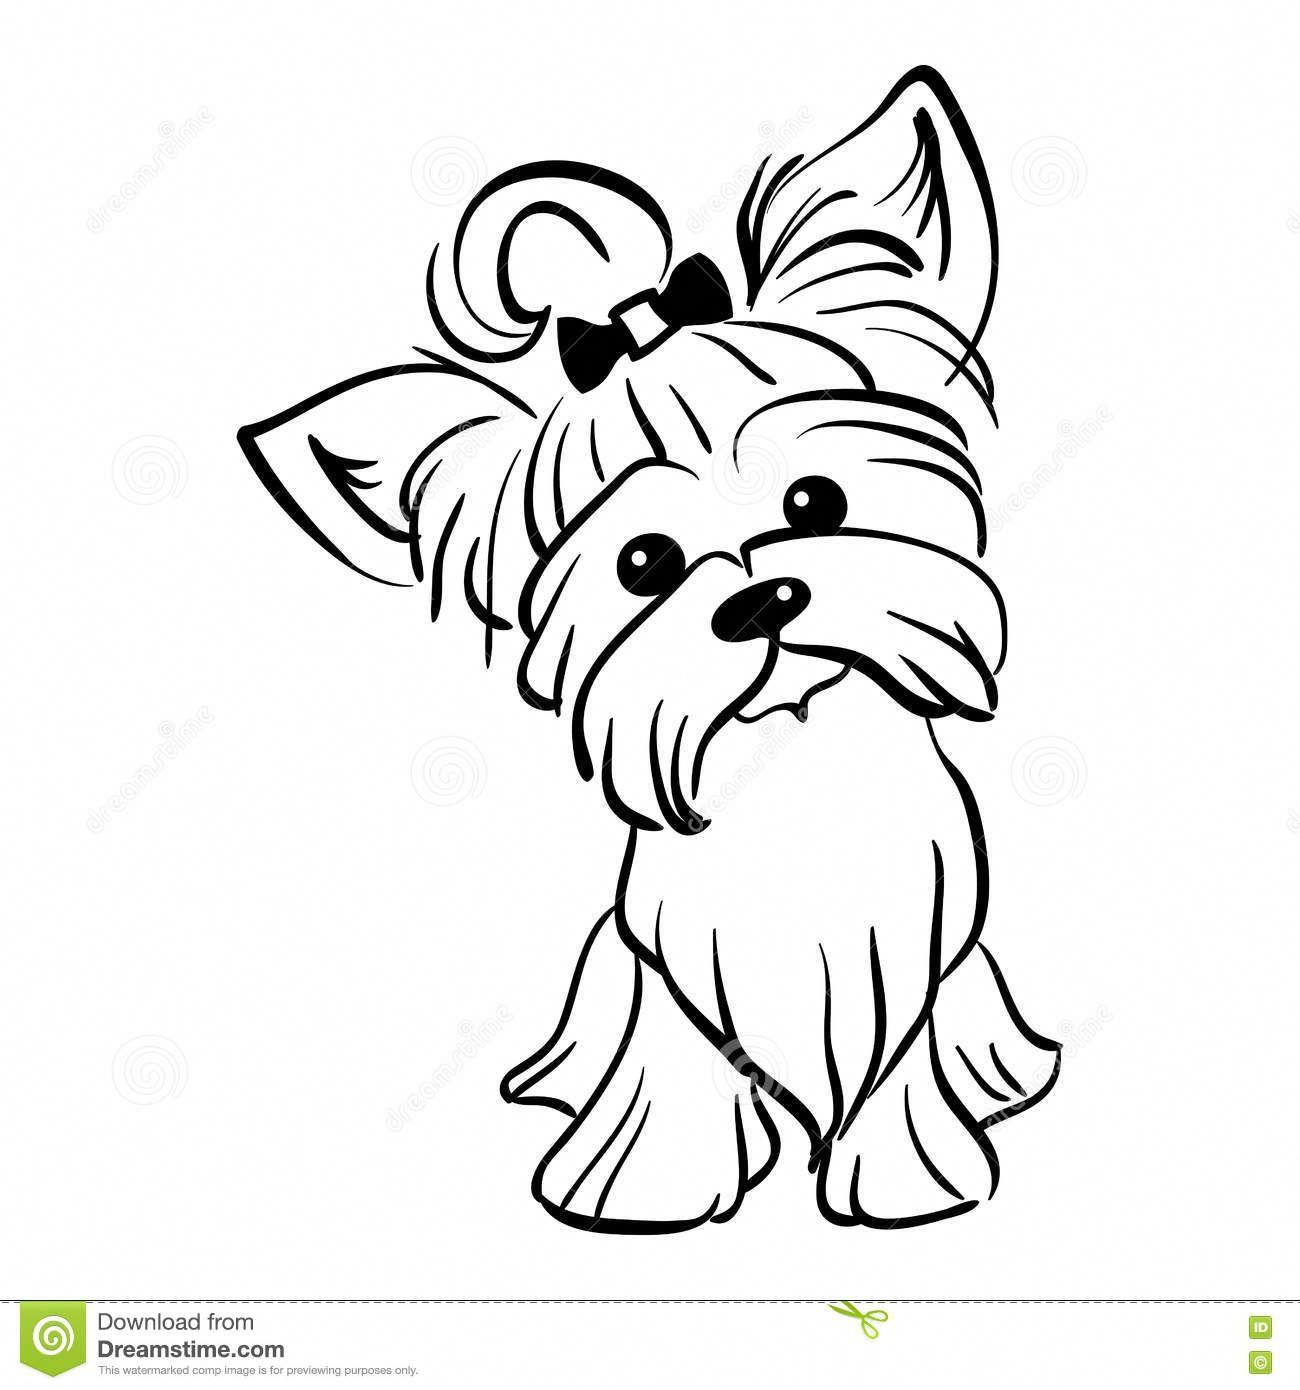 Dog Training Dog Hacks Teach Your Dog Dog Learning Dog Tips Dogdrawing Puppy Coloring Pages Dog Coloring Page Dog Drawing [ 1390 x 1300 Pixel ]